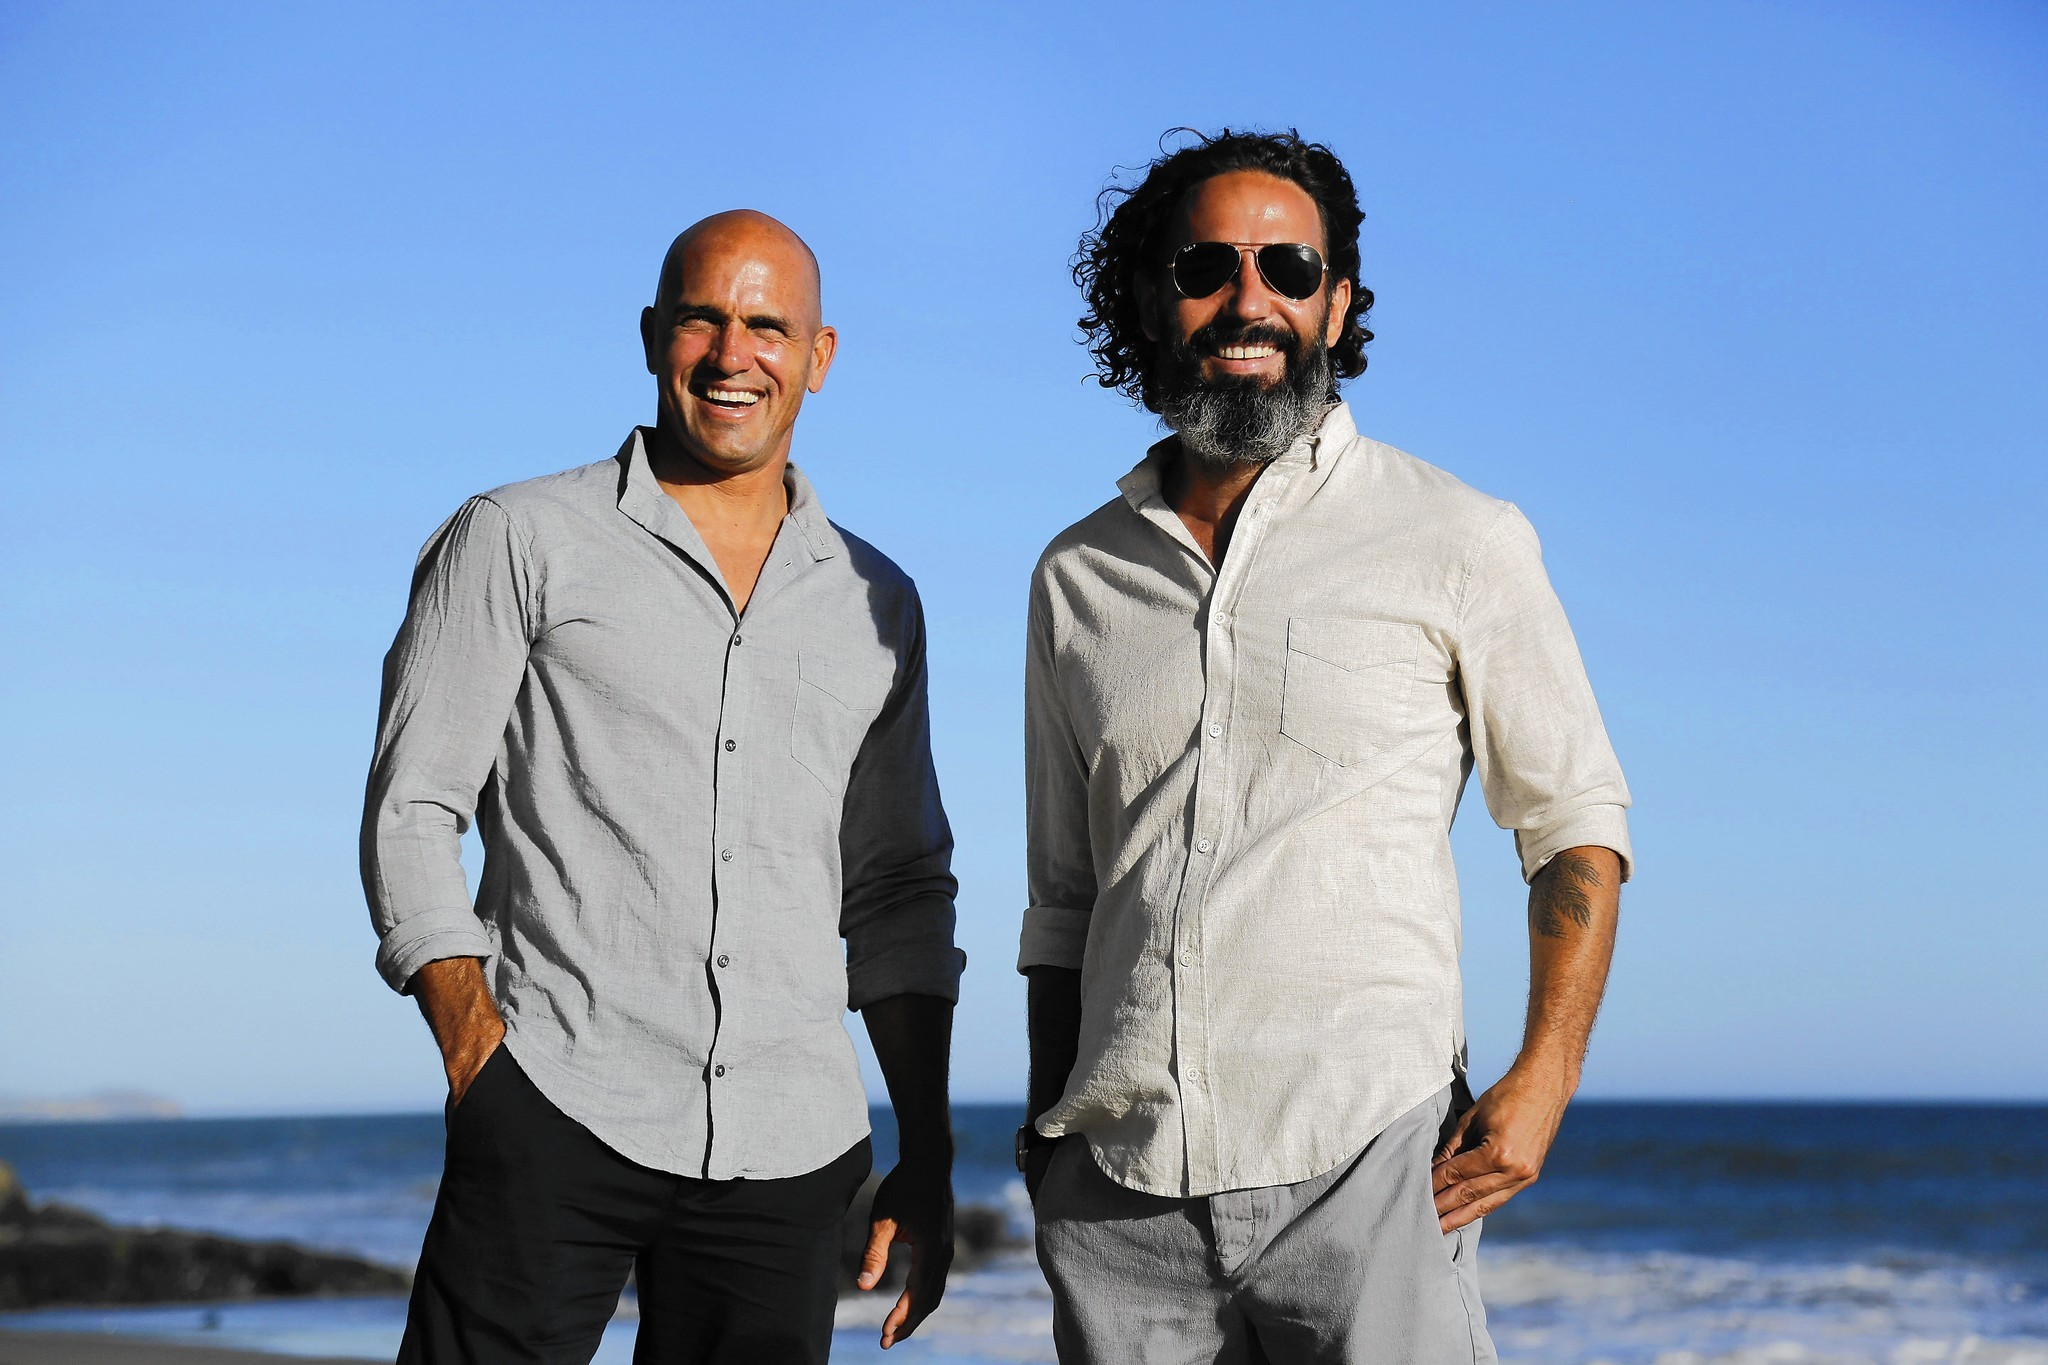 Surfer Kelly Slater launches a sustainable (but not inexpensive) clothing  line f1458fccb16a3